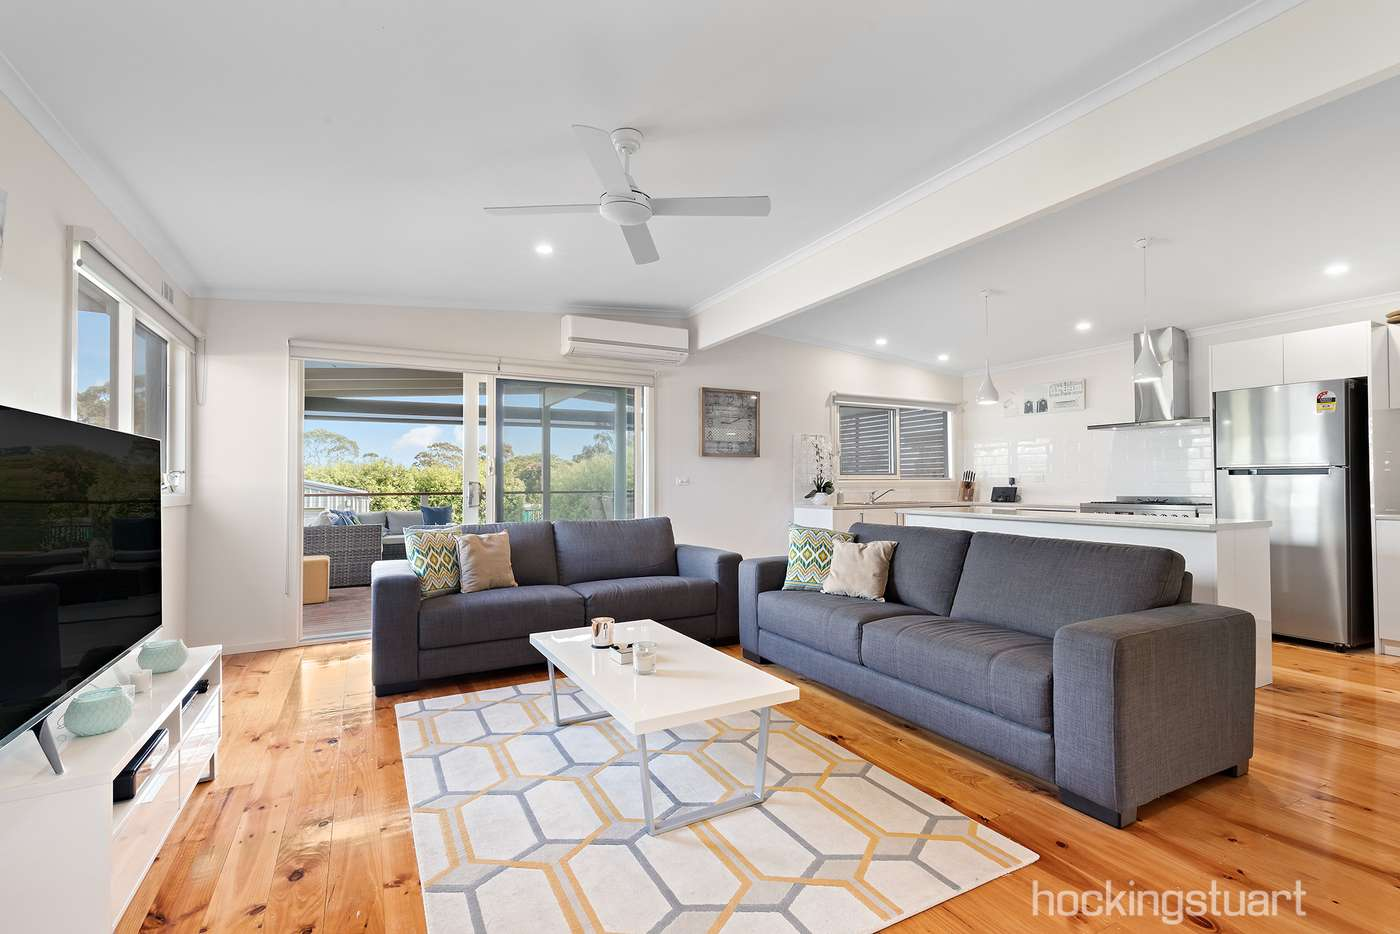 Fifth view of Homely house listing, 12 Iris Street, Dromana VIC 3936